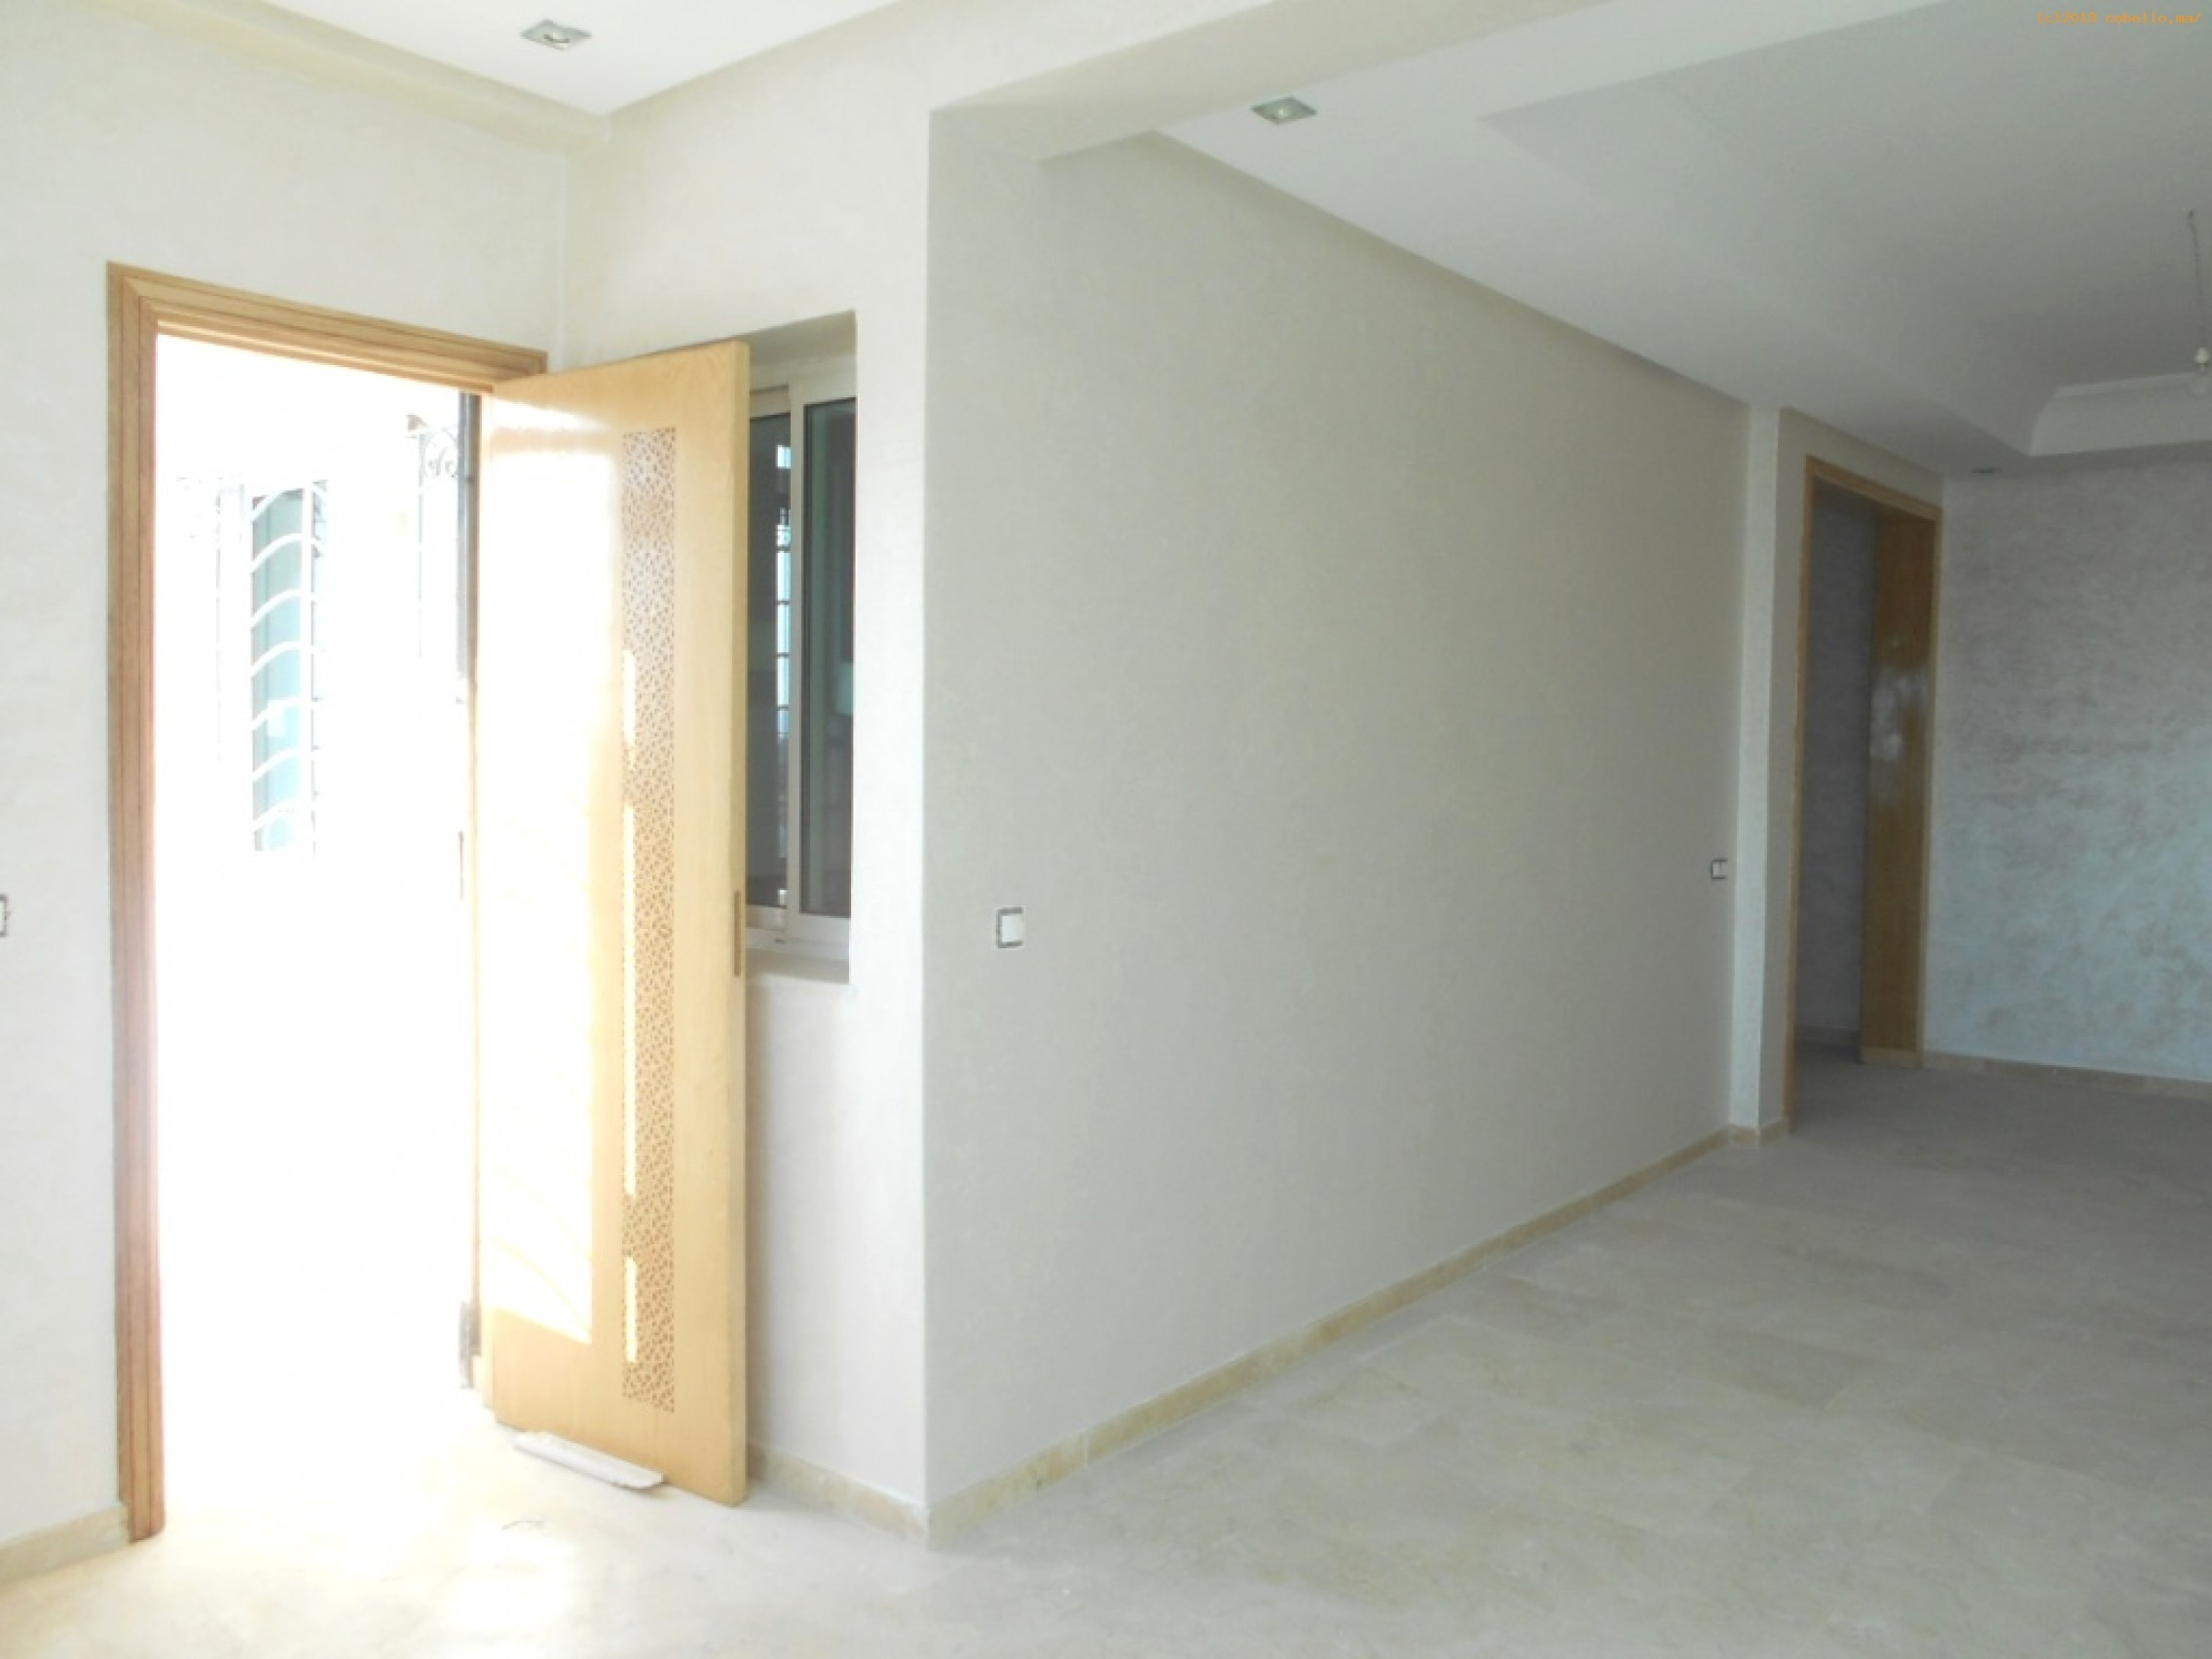 Vente <strong>Appartement</strong> Rabat Hassan <strong>79 m2</strong>